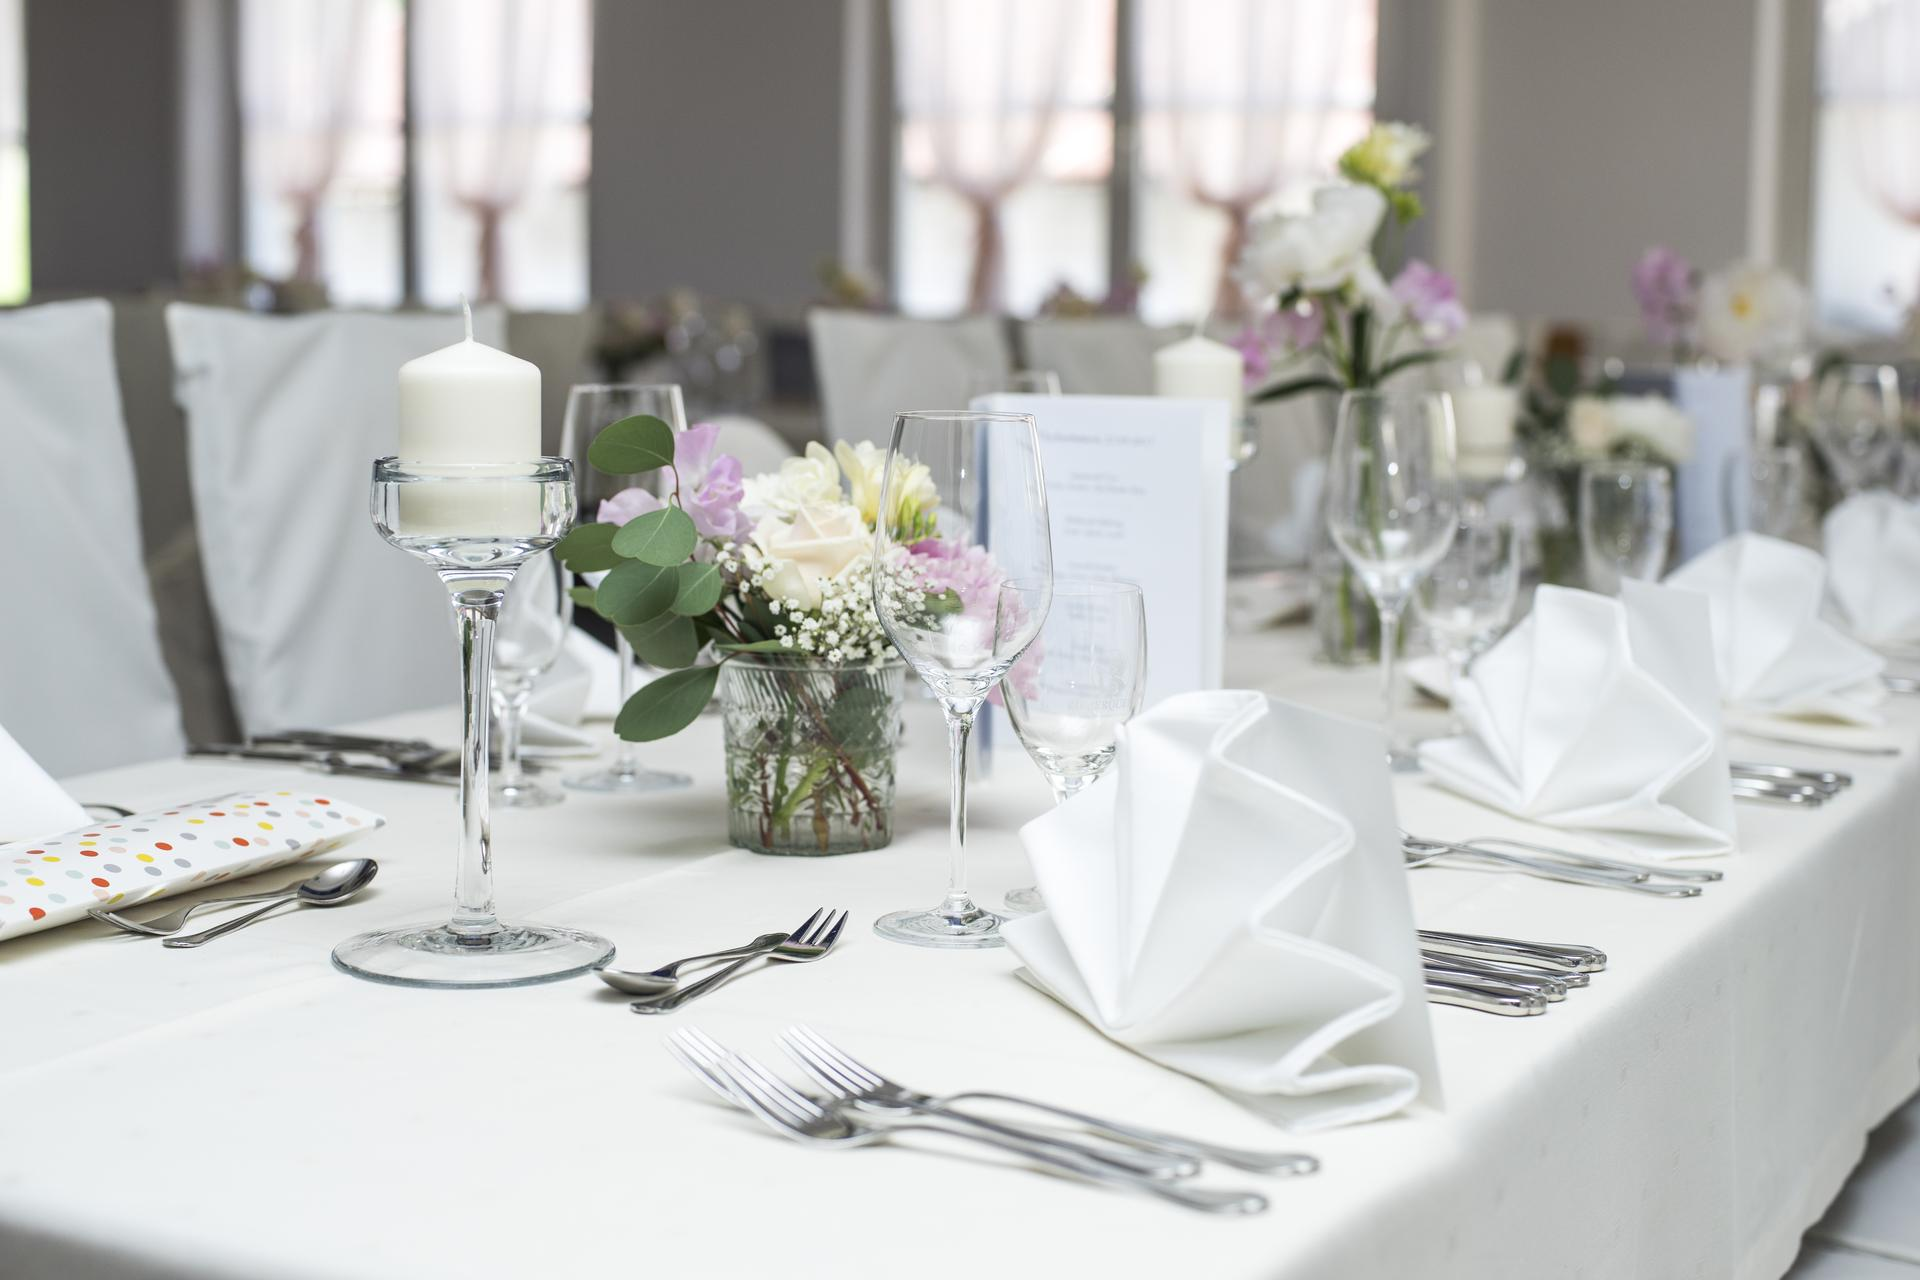 Wedding location in Tyrol - your 4 star Hotel Post in Nauders